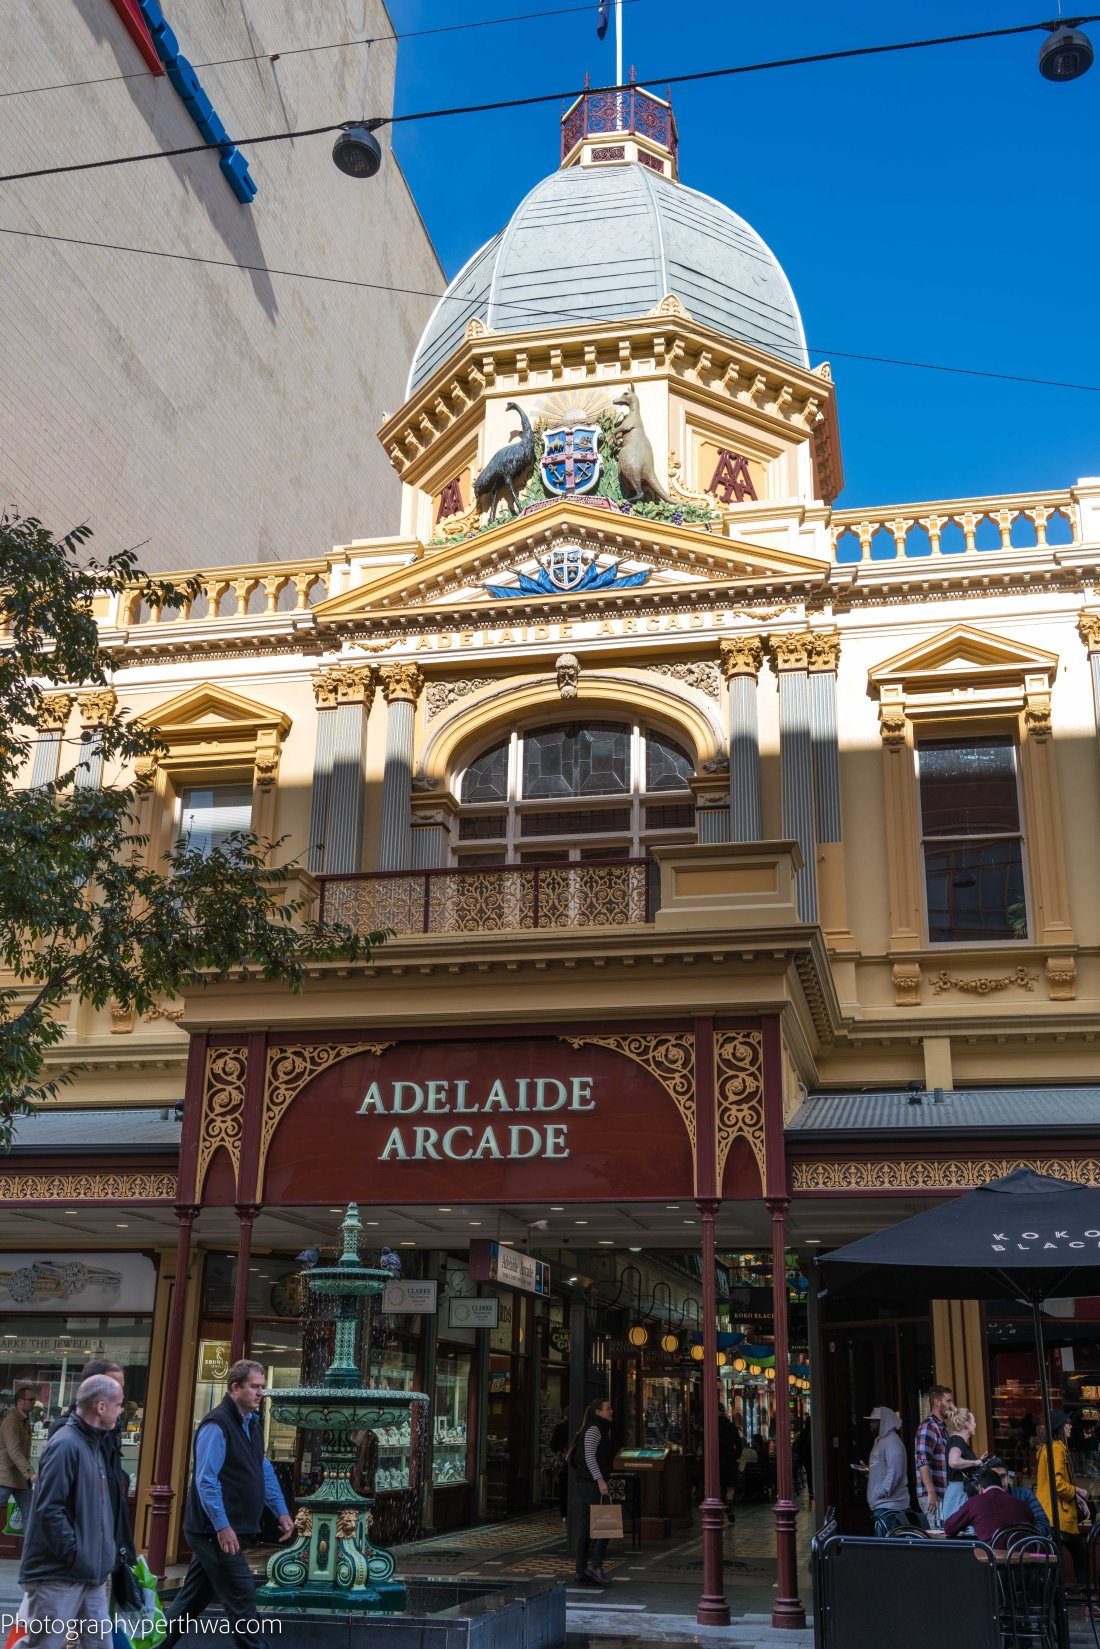 Adelaide Arcade (1 of 1)